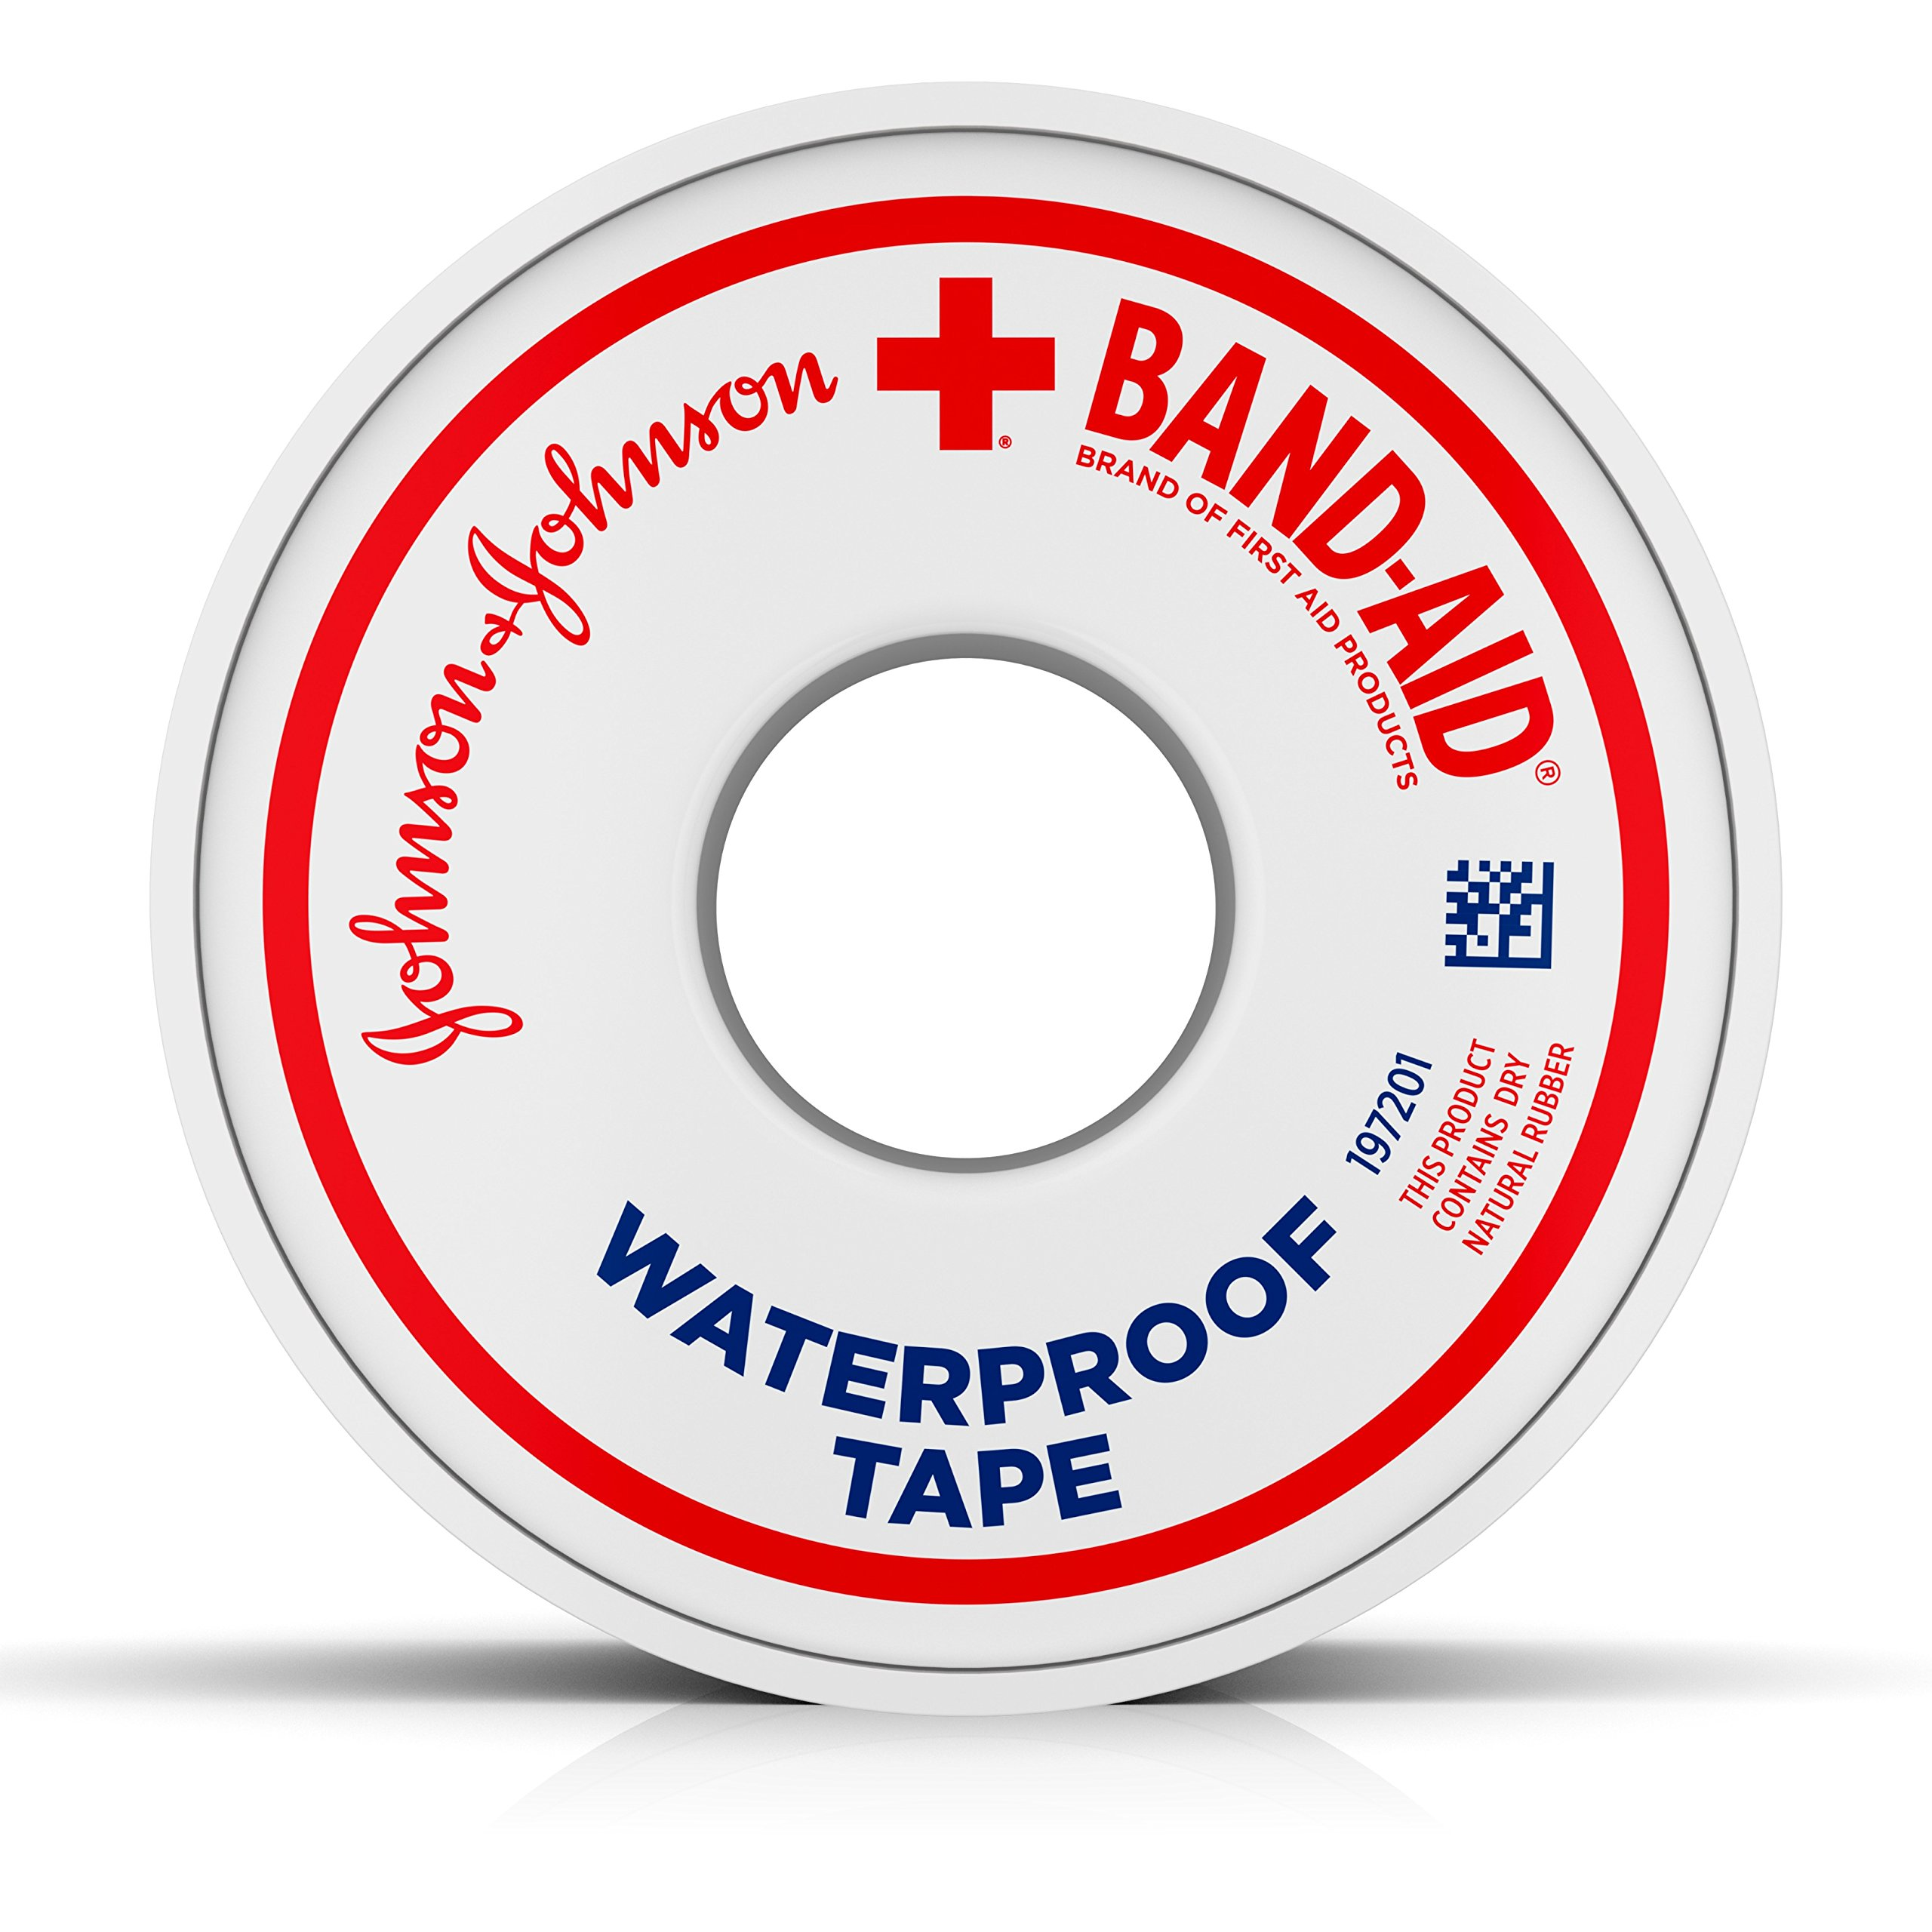 Band-Aid Brand Of First Aid Products Waterproof Tape, 1 Inch By 10 Yards (Pack of 6) by Band-Aid